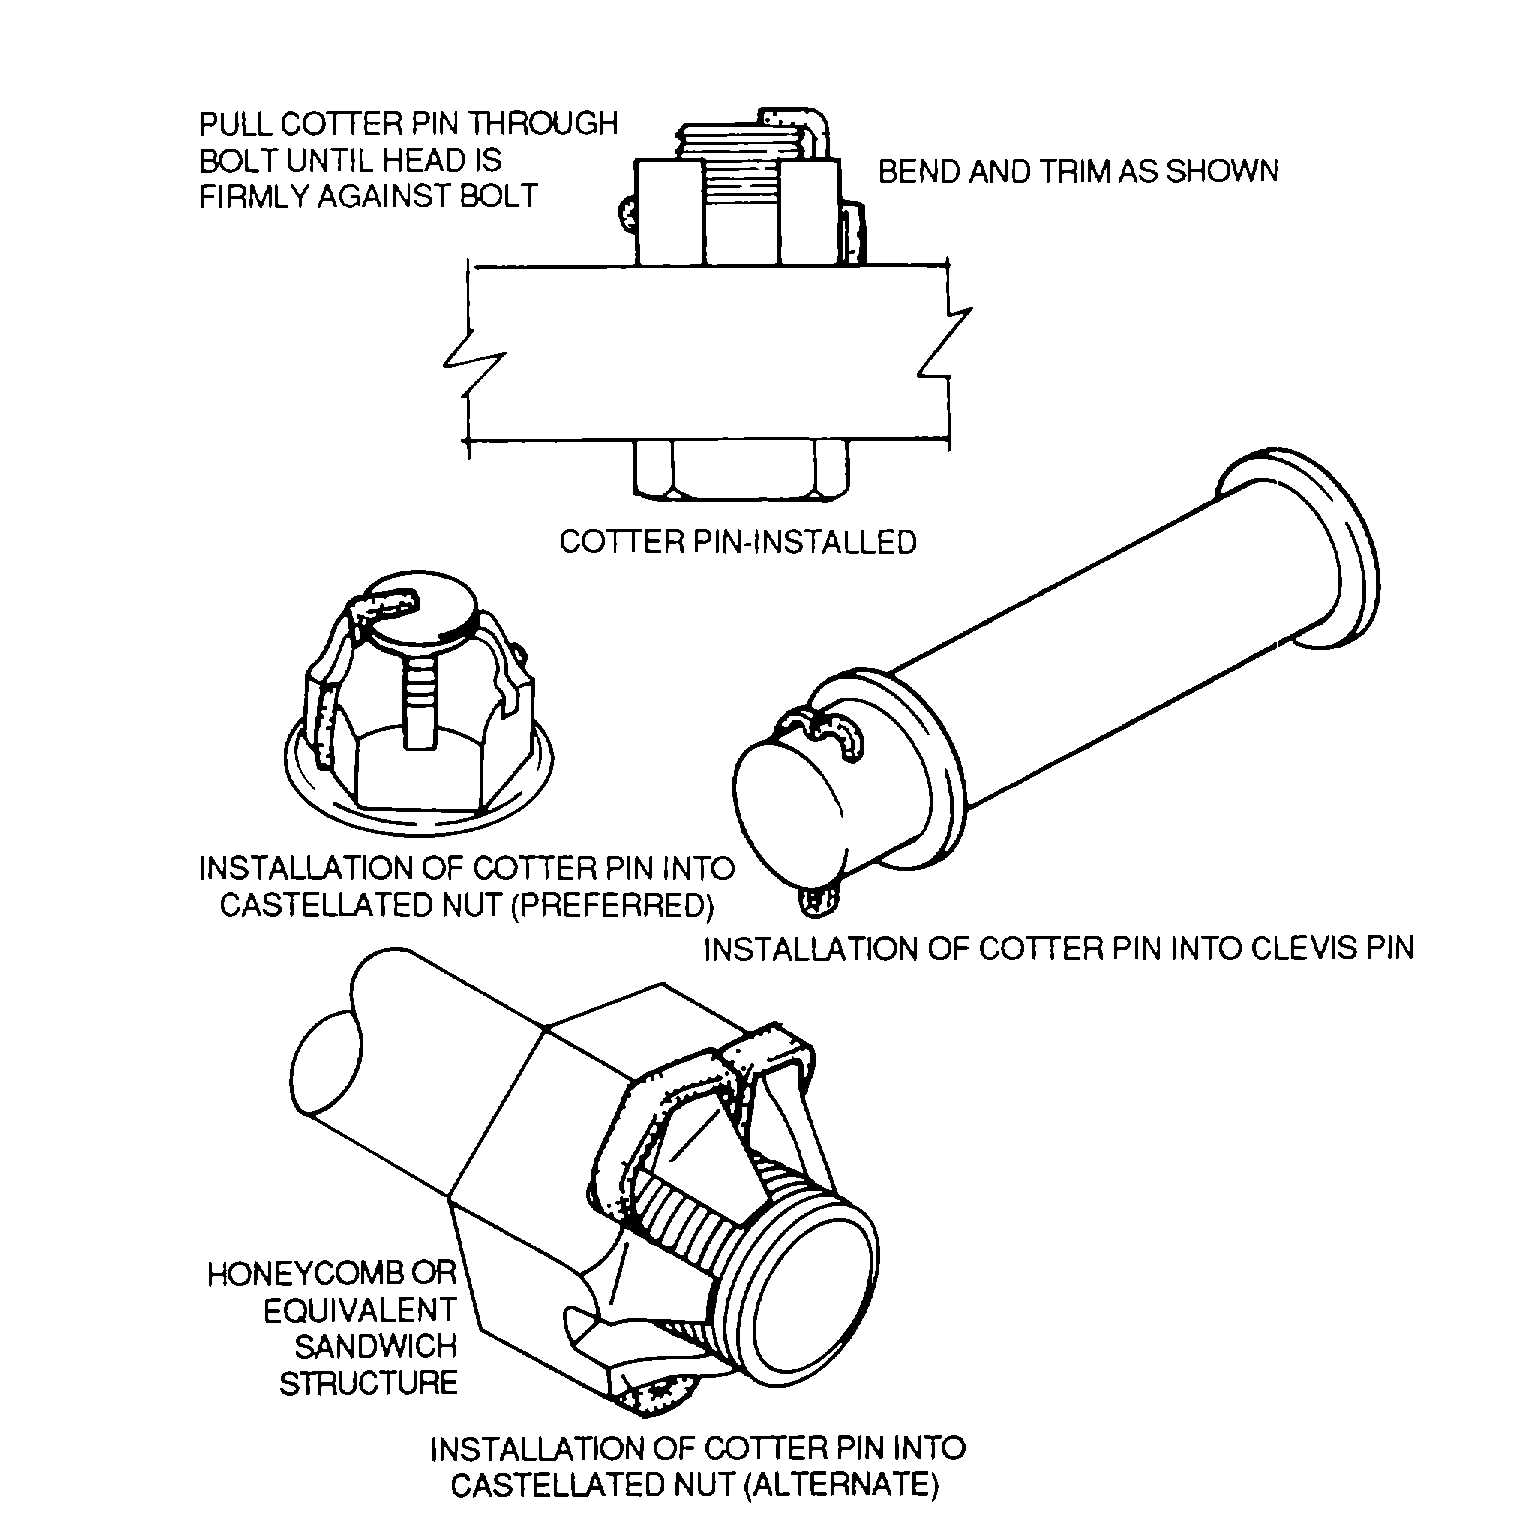 1f5ta Cant Locate Airbag Module Car Physically furthermore Ceiling Fan Switch Wiring 3 besides Pac G45002imp as well 3hph8 Steps Install Actuator 2004 Dodge Ram together with US6276106. on 4 way installation